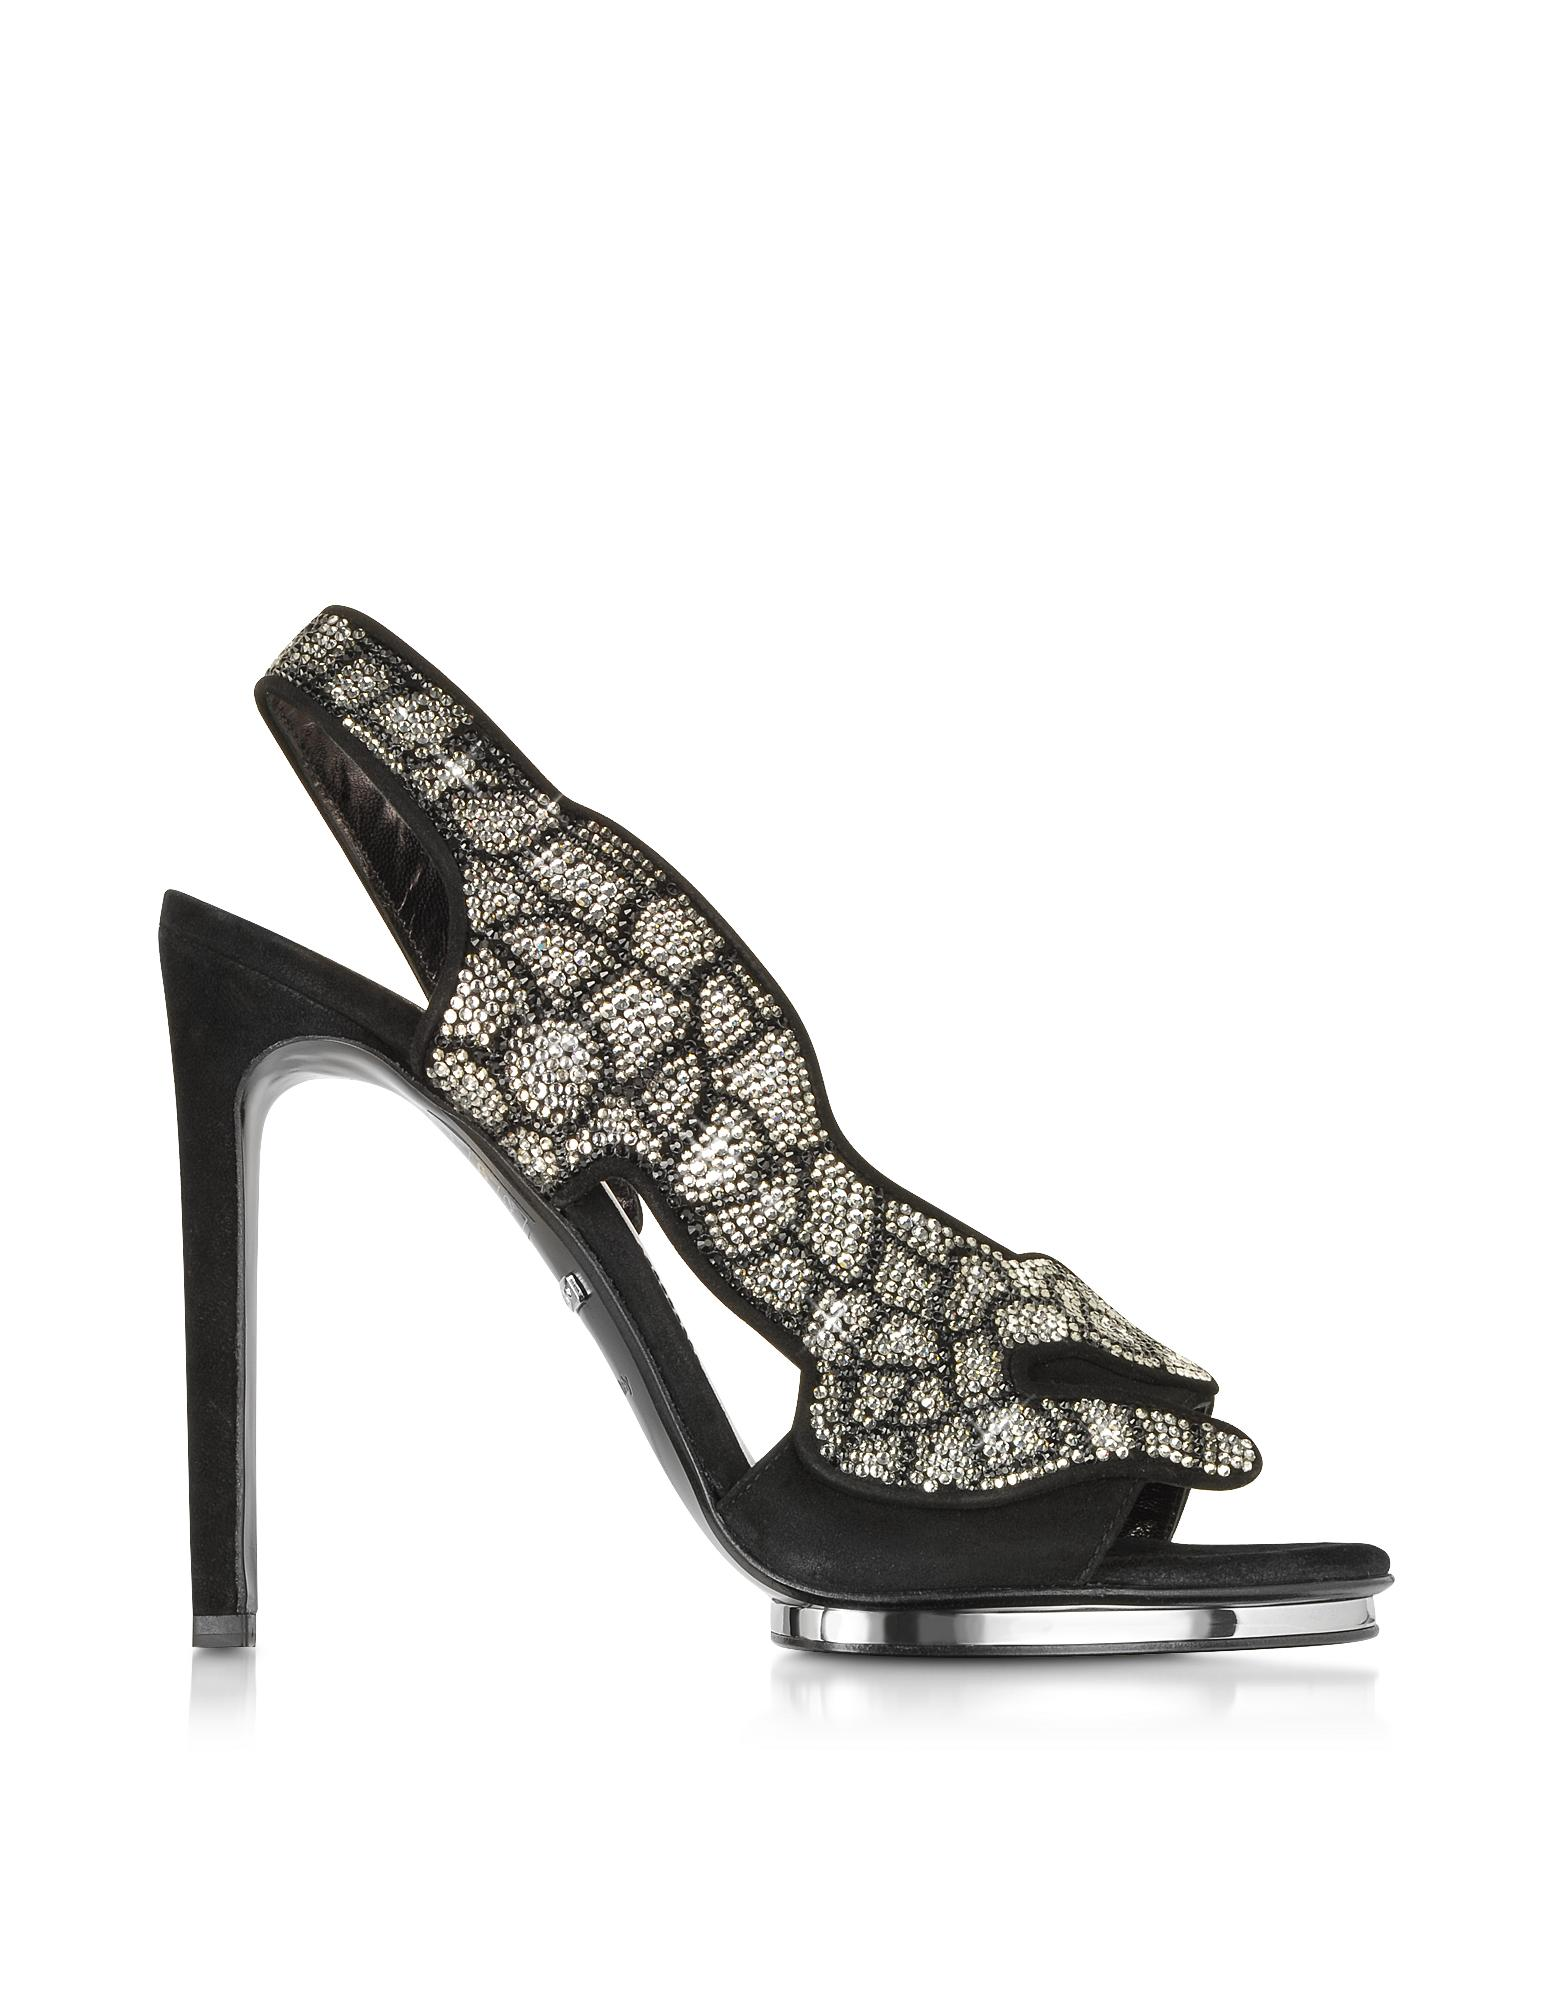 Black Suede and Crystals Panther Sandal - Roberto Cavalli